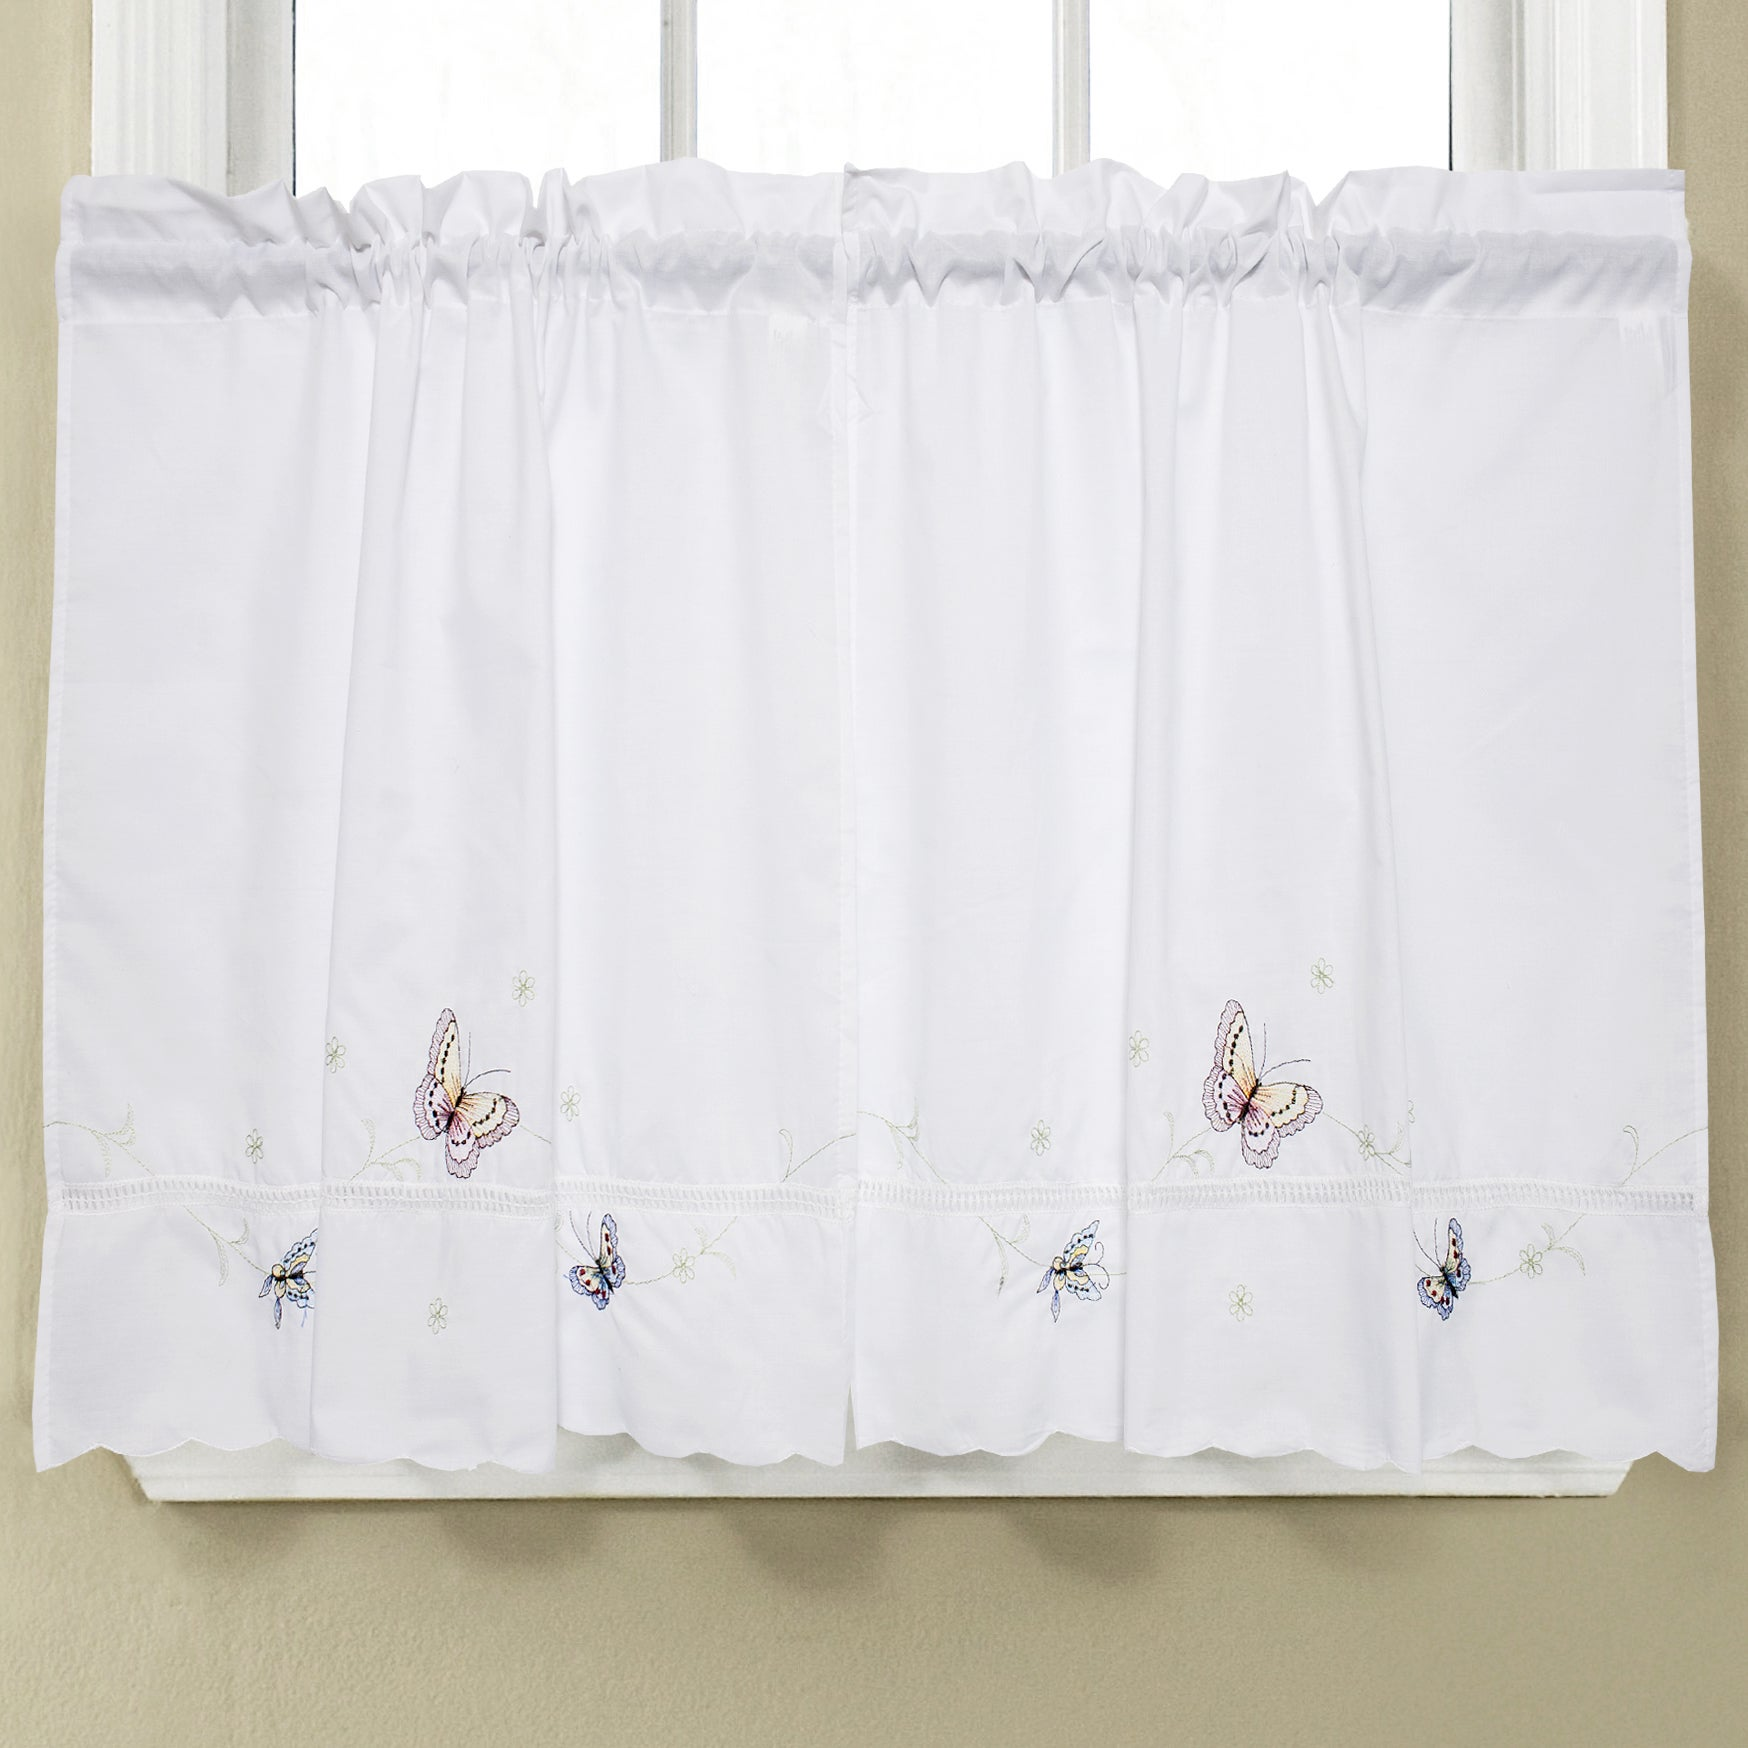 Fluttering Butterfly White Embroidered Tier, Swag, or Valance ...